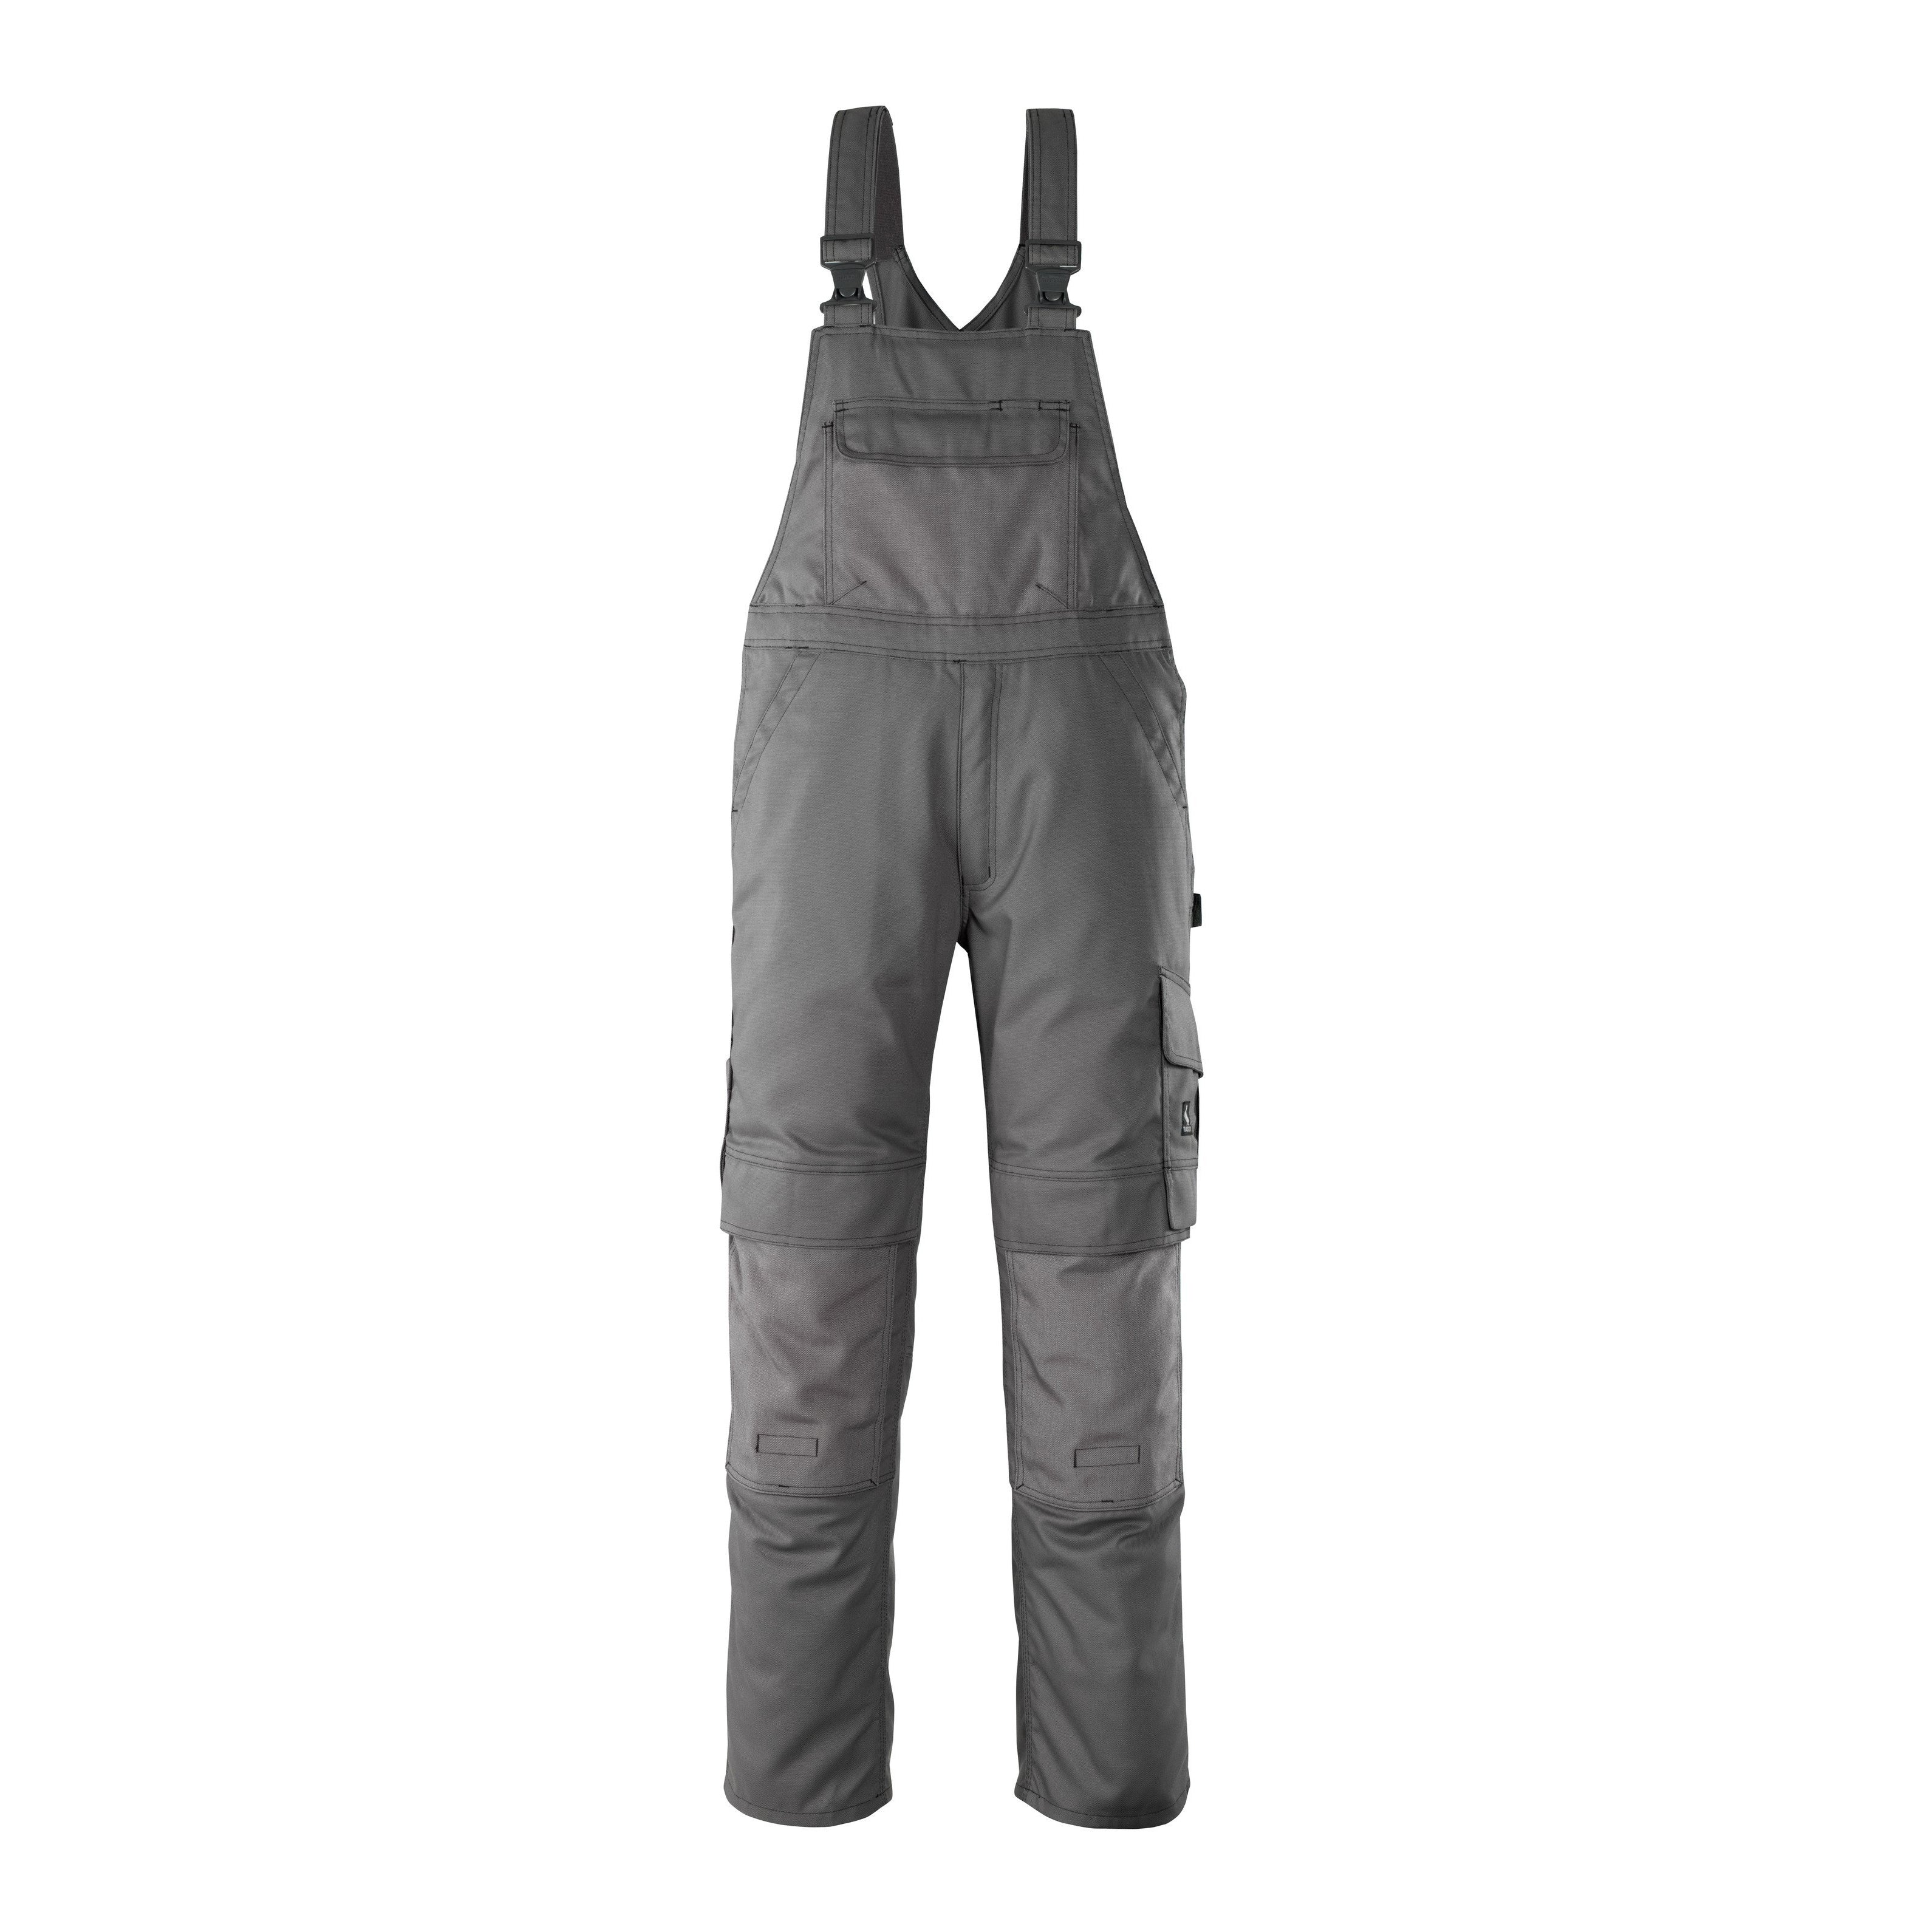 Mascot Orense Hardwear Bib & Brace With Kneepad Pockets